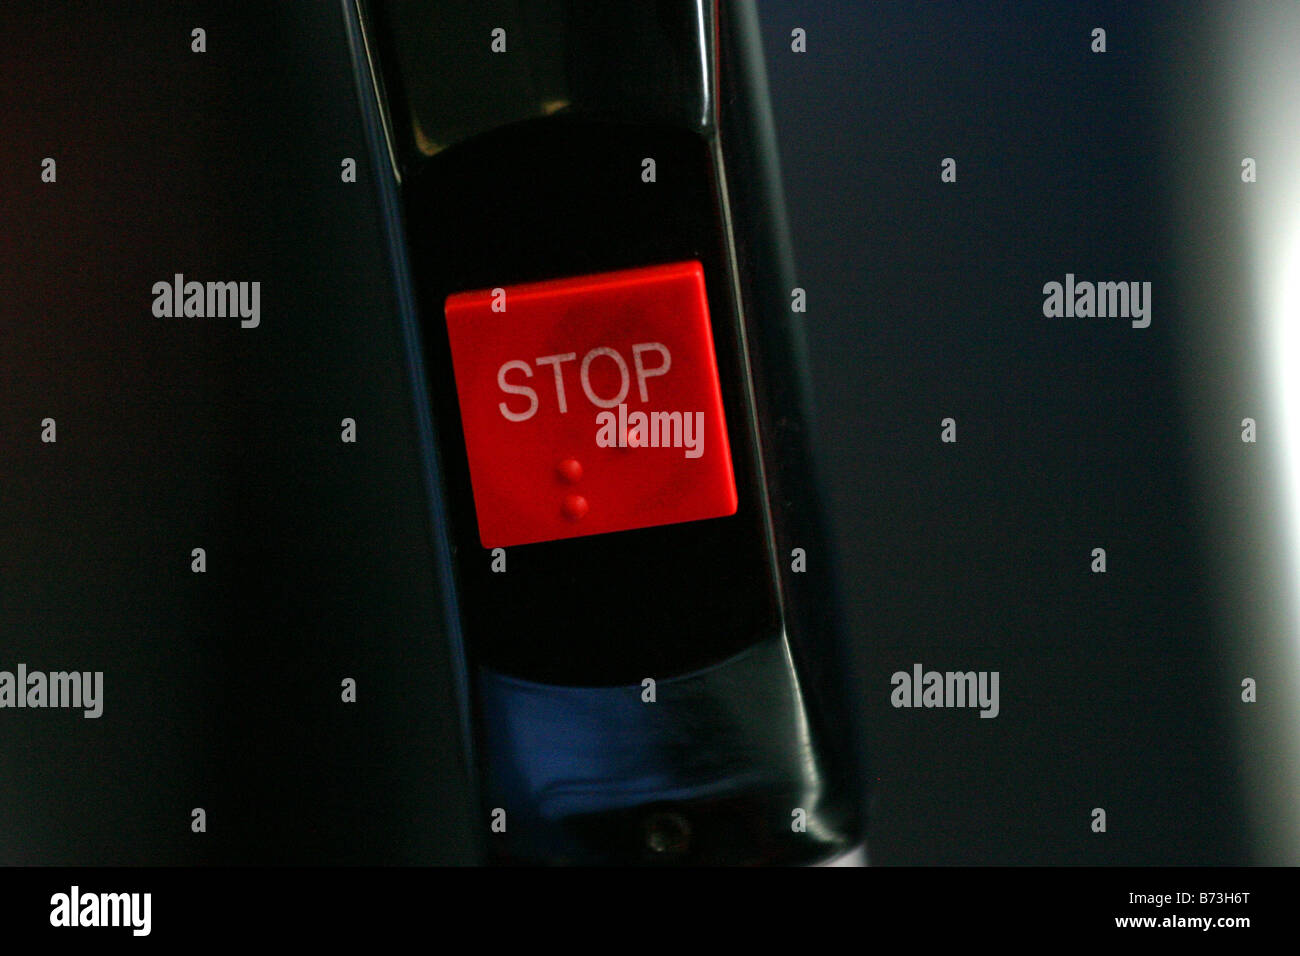 Stop sign in a bendy bus - Stock Image